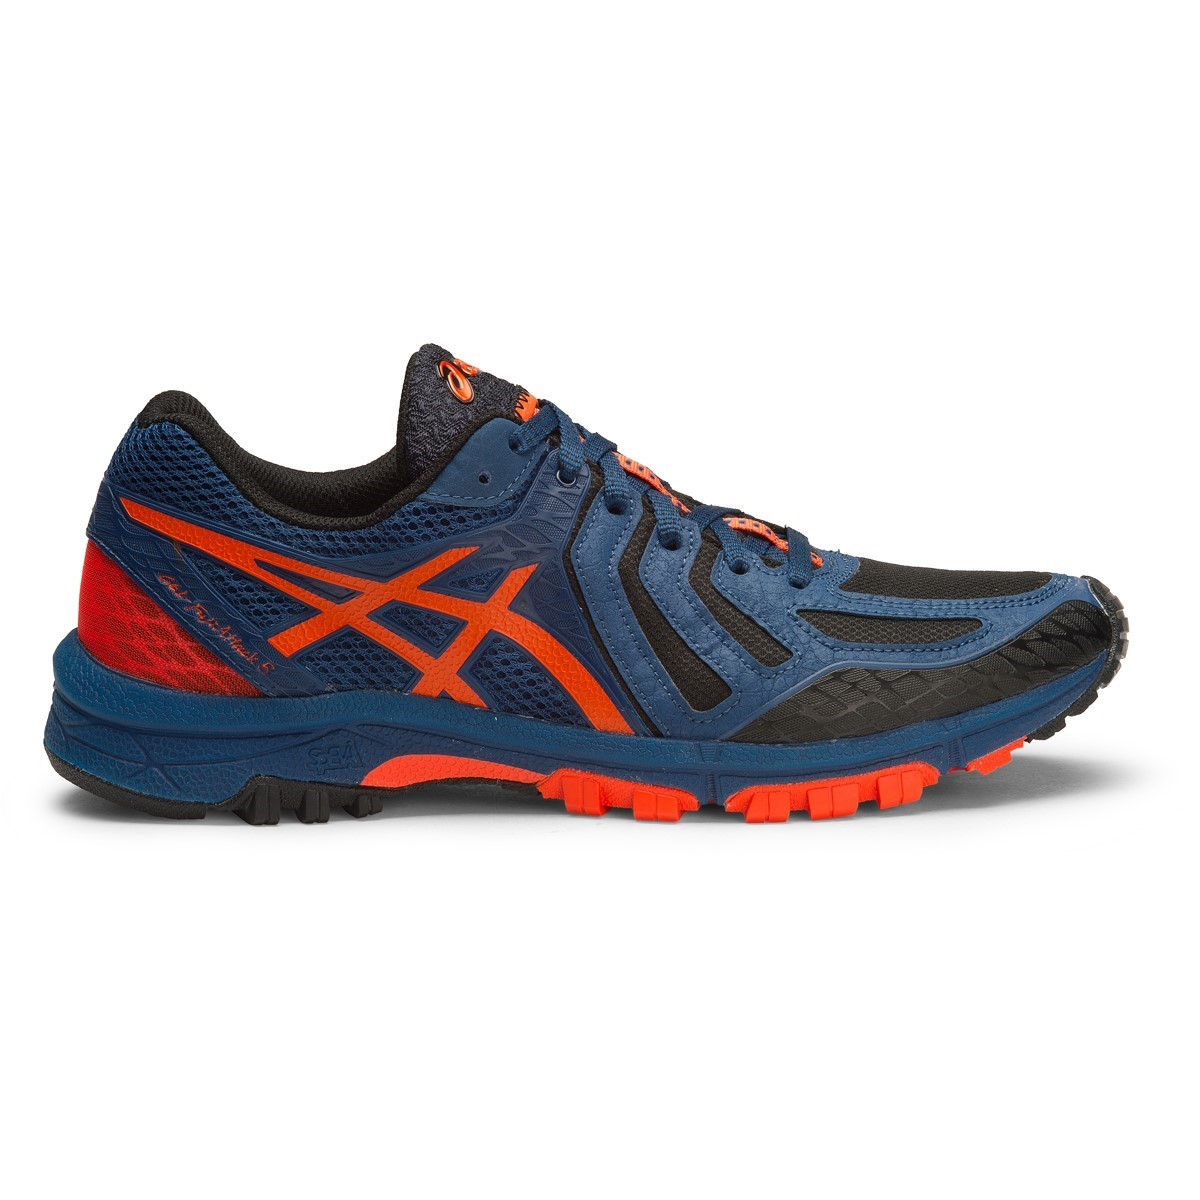 Asics Fuji Trail Running Shoes